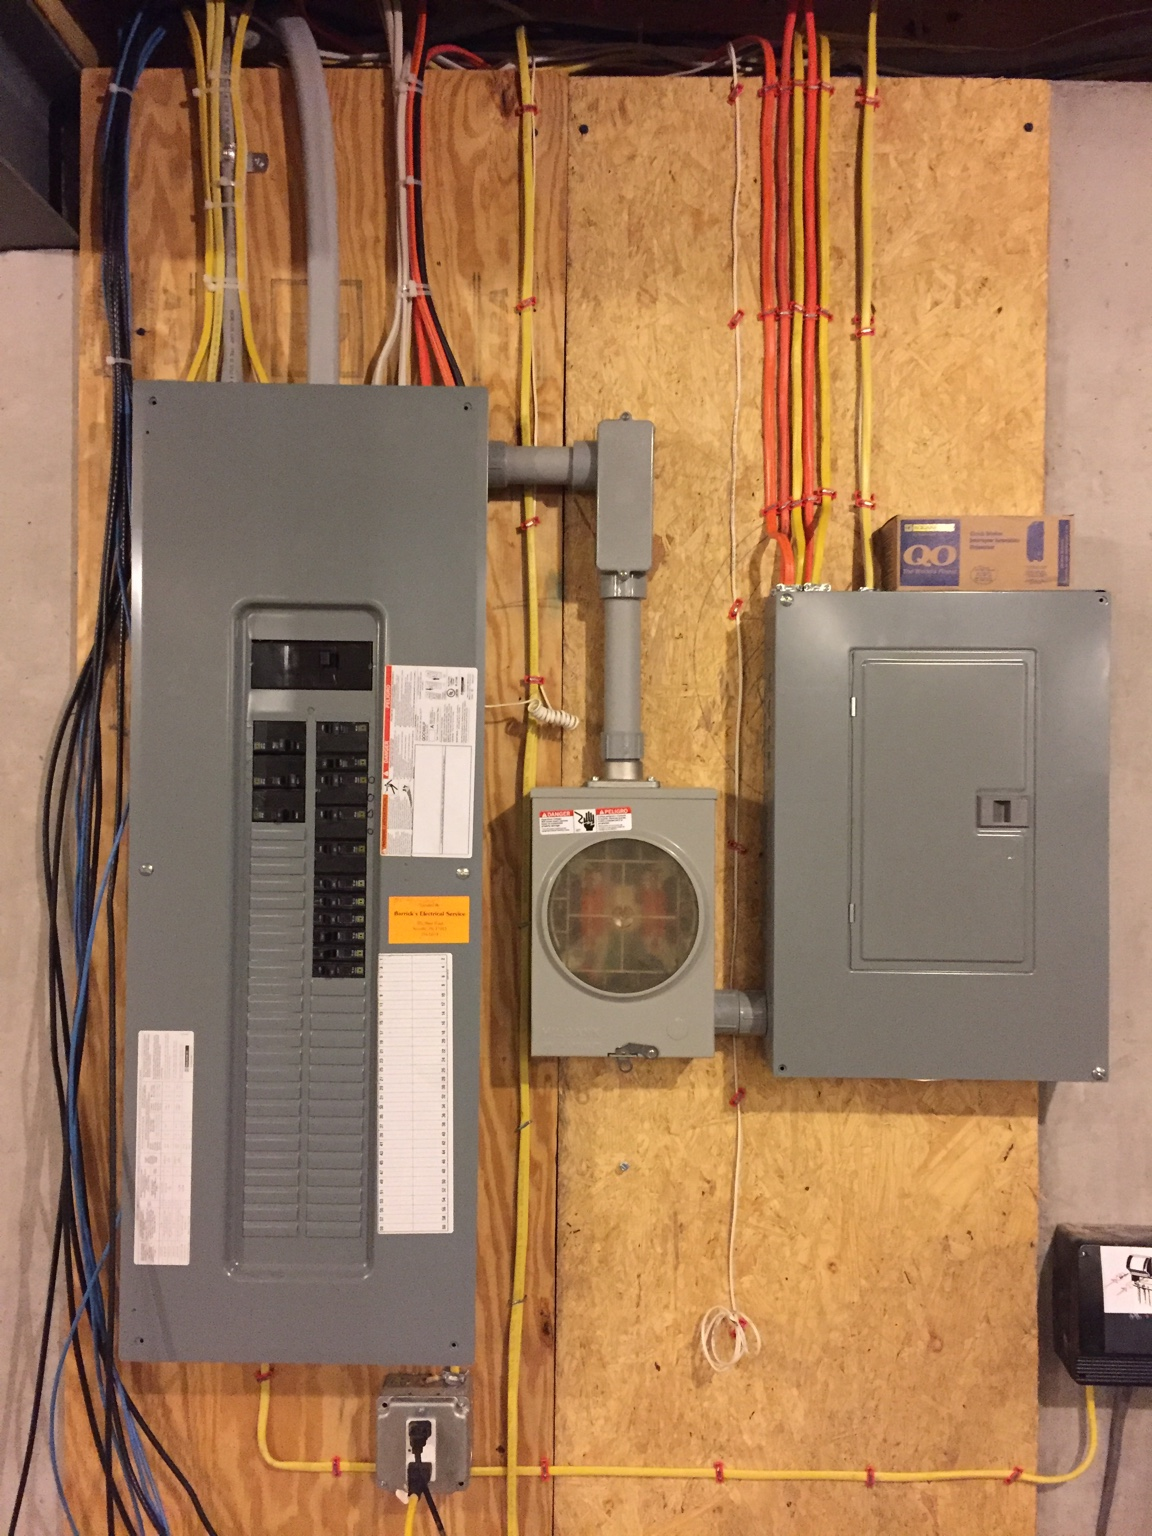 New Garage Plans Have A Question Page 3 Wiring Sub Panel There Is Second Meter In The Box Our Electric Company Cooperative And They Offer Load Control Program Everything On About